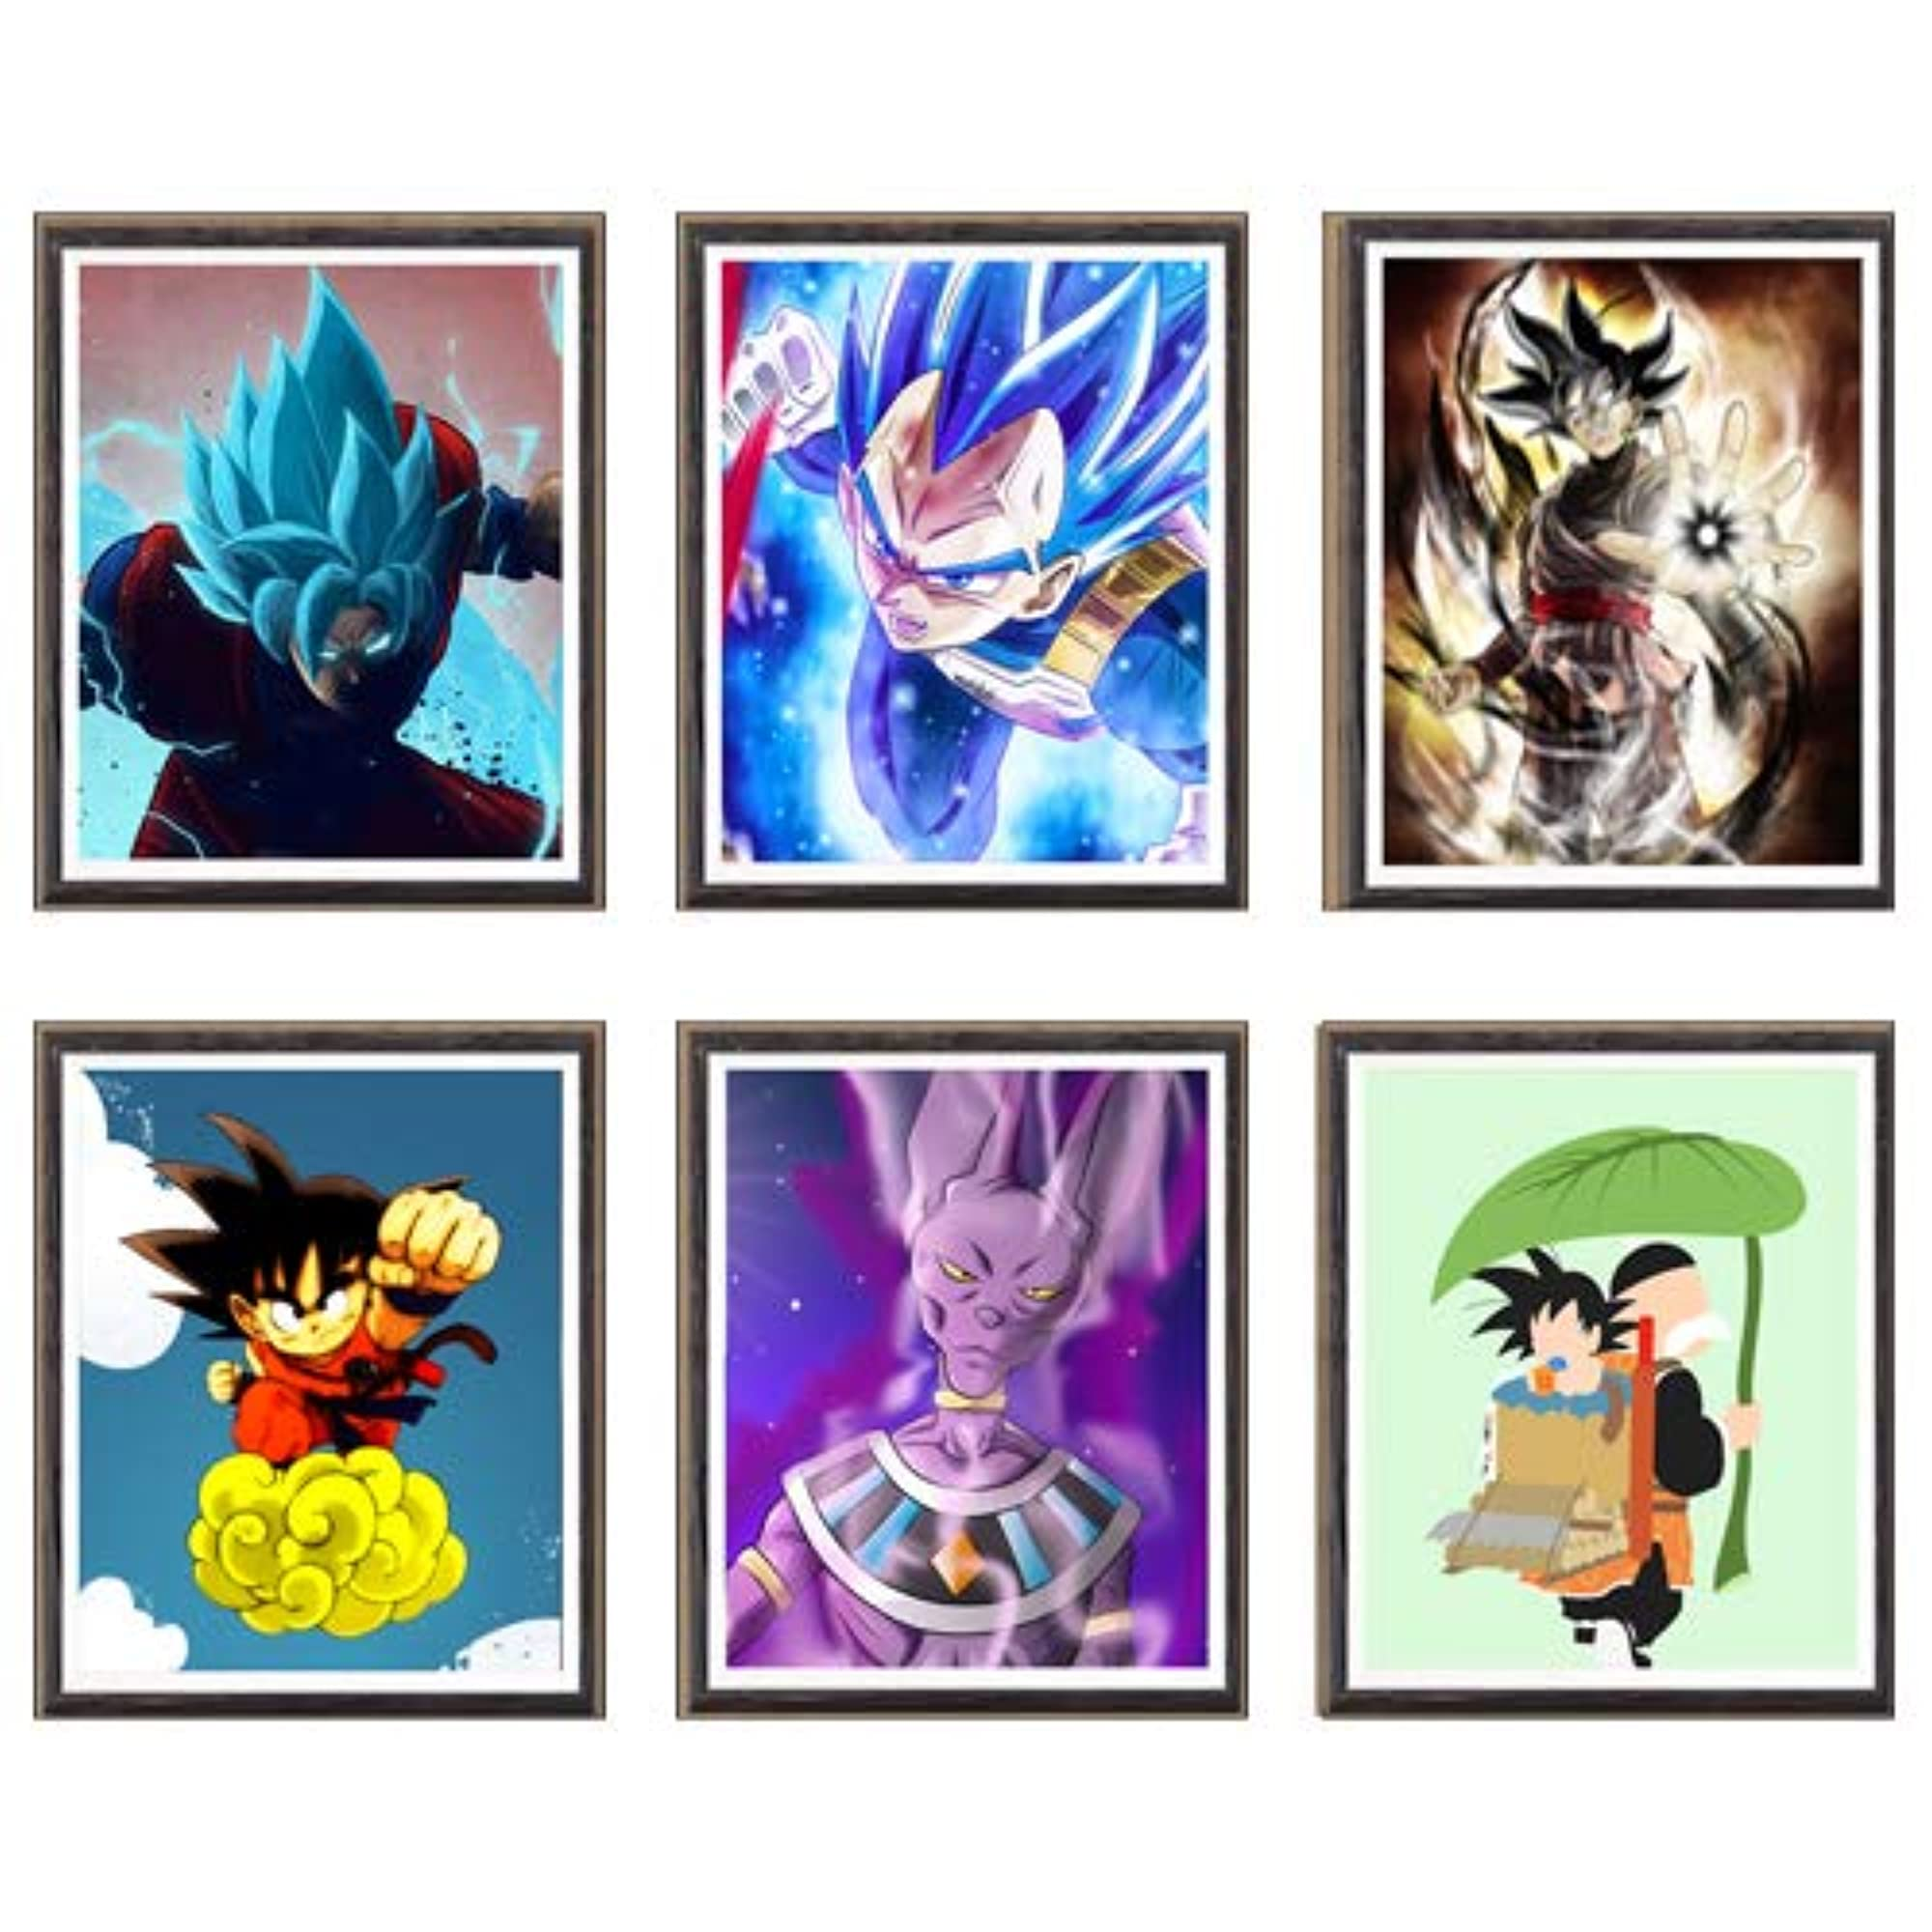 Digital Anime Canvas Art Prints